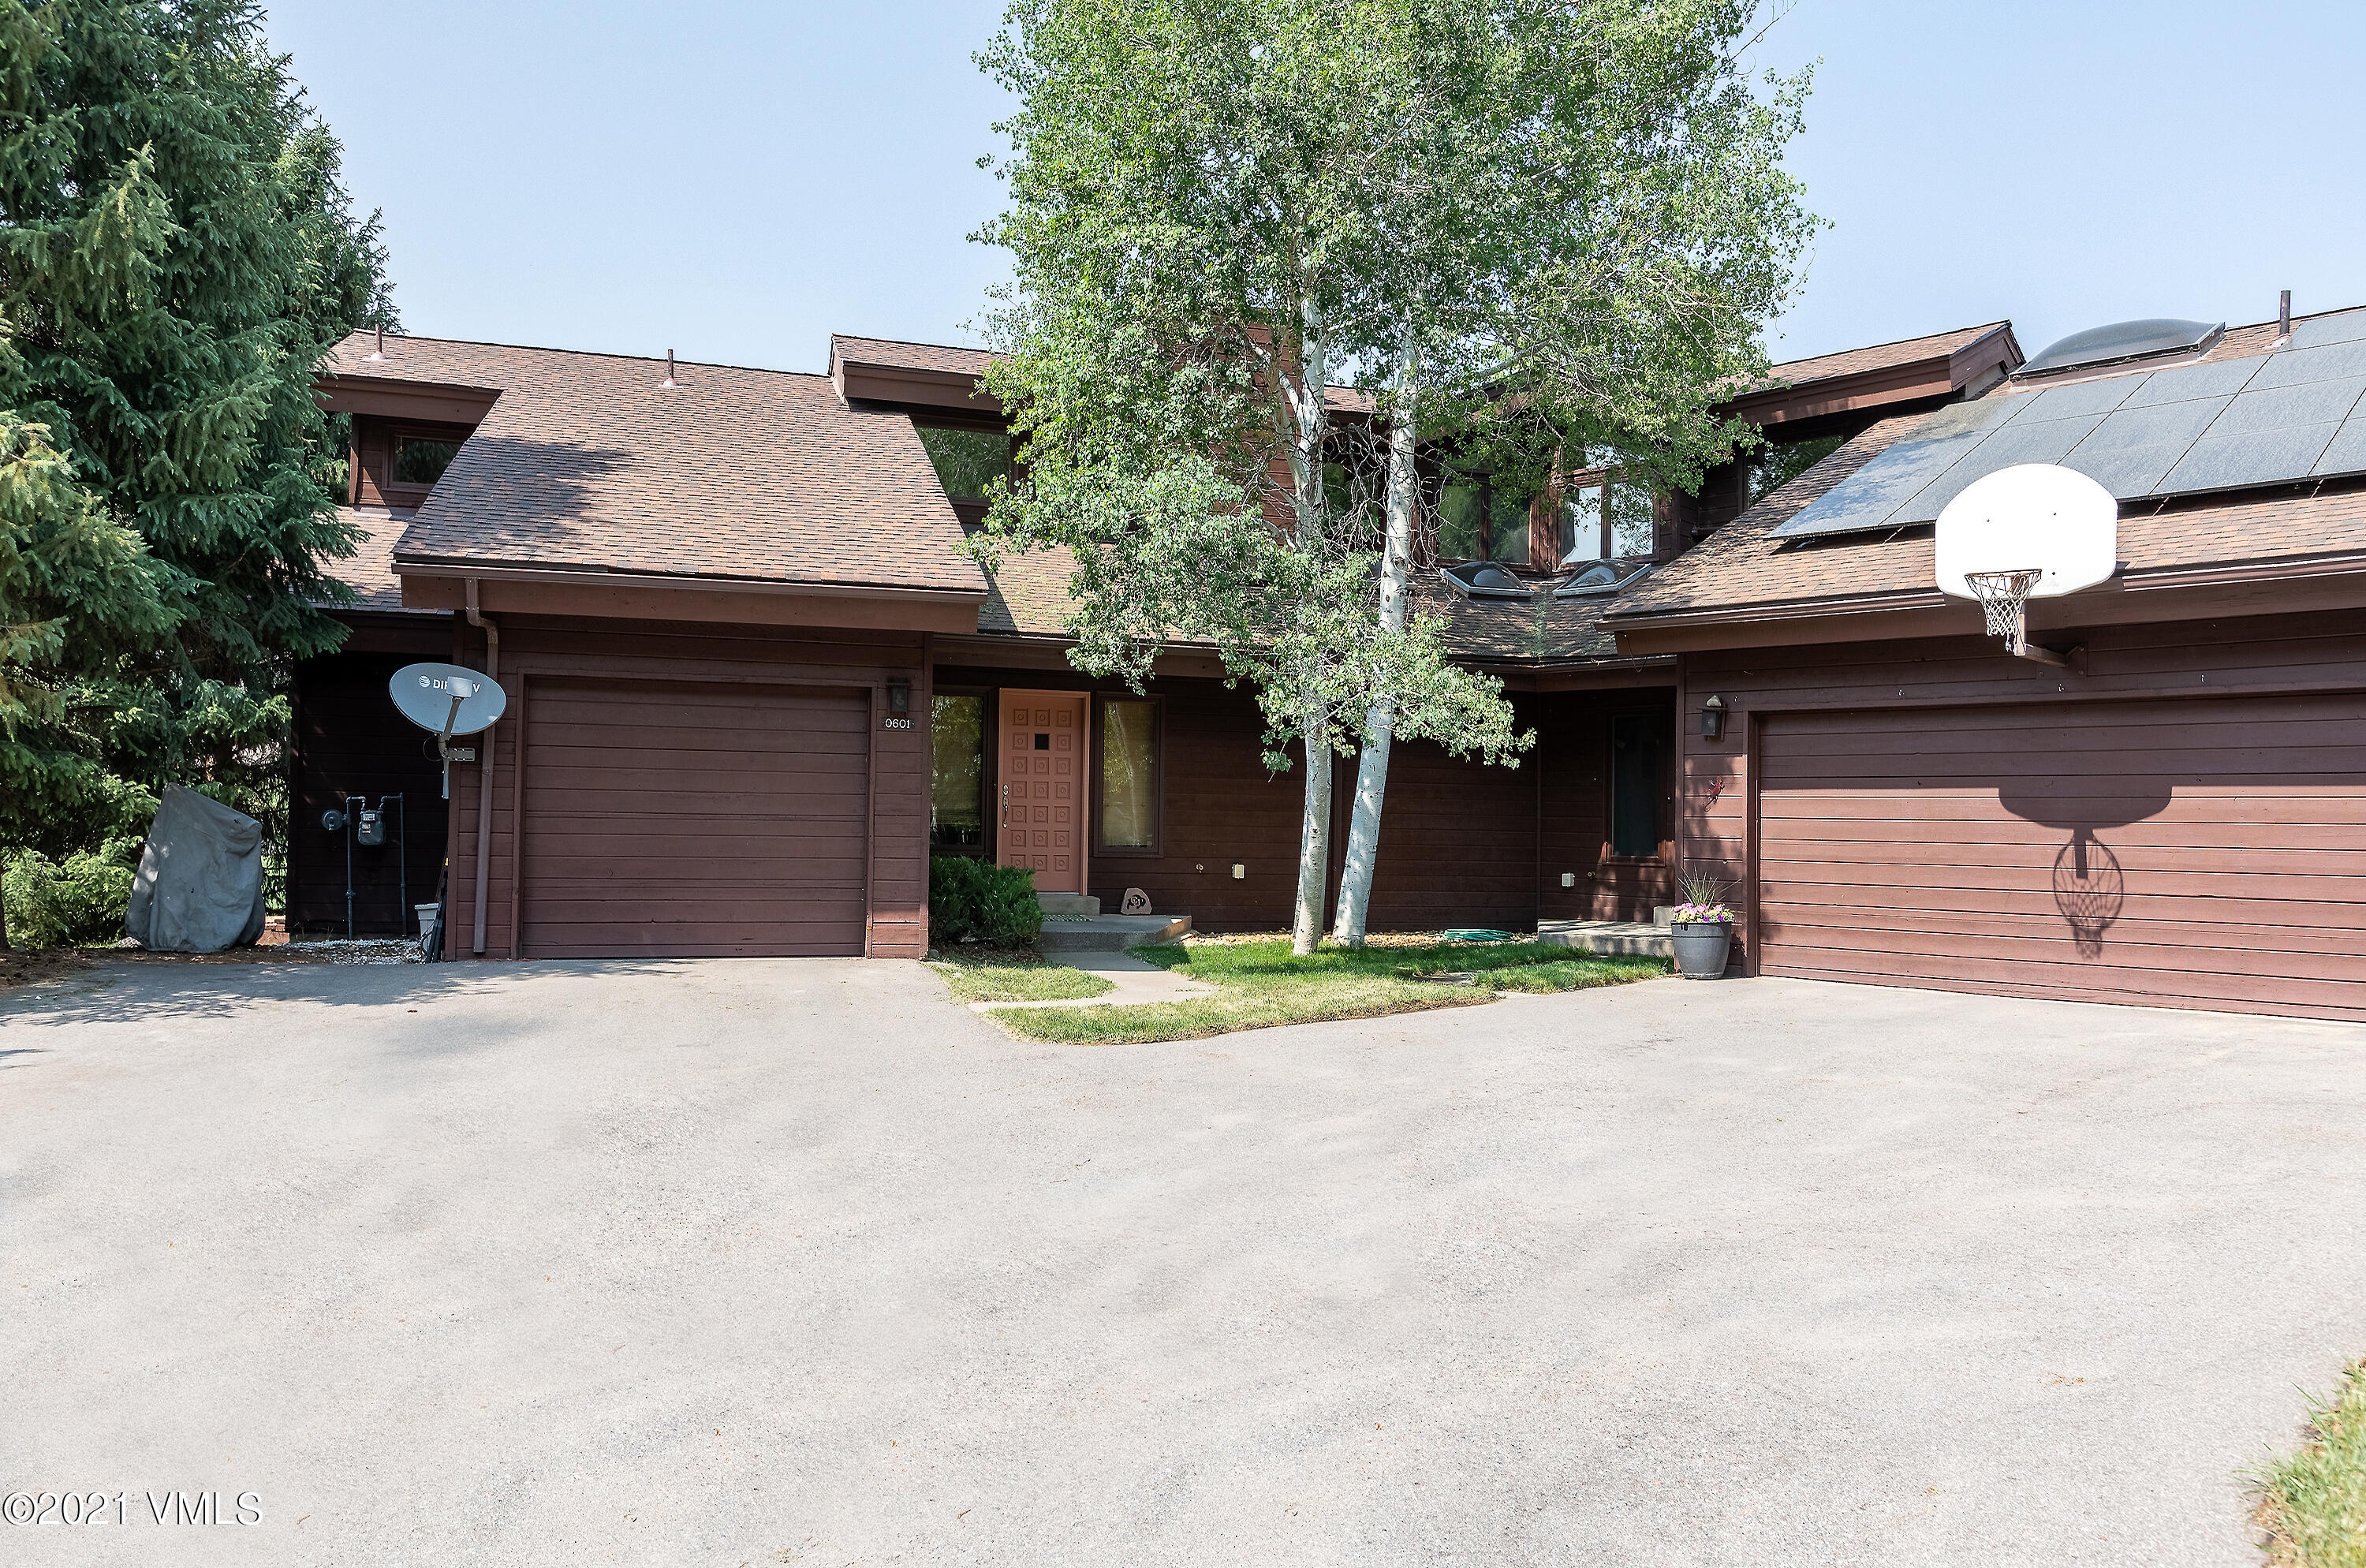 One of the best settings in EagleVail.  This light and bright duplex has 3 bedrooms, 2.5 baths, and a one of the largest great rooms in the neighborhood with vaulted ceilings and plenty of windows.  The full-length deck overlooks 3 ponds and the golf course.  It also has a generous laundry with window, sink, and folding table.  The home is split level, just 6 steps up to the kitchen from garage and 6 steps down to bedrooms and laundry.  A desirable floorplan for today's market.